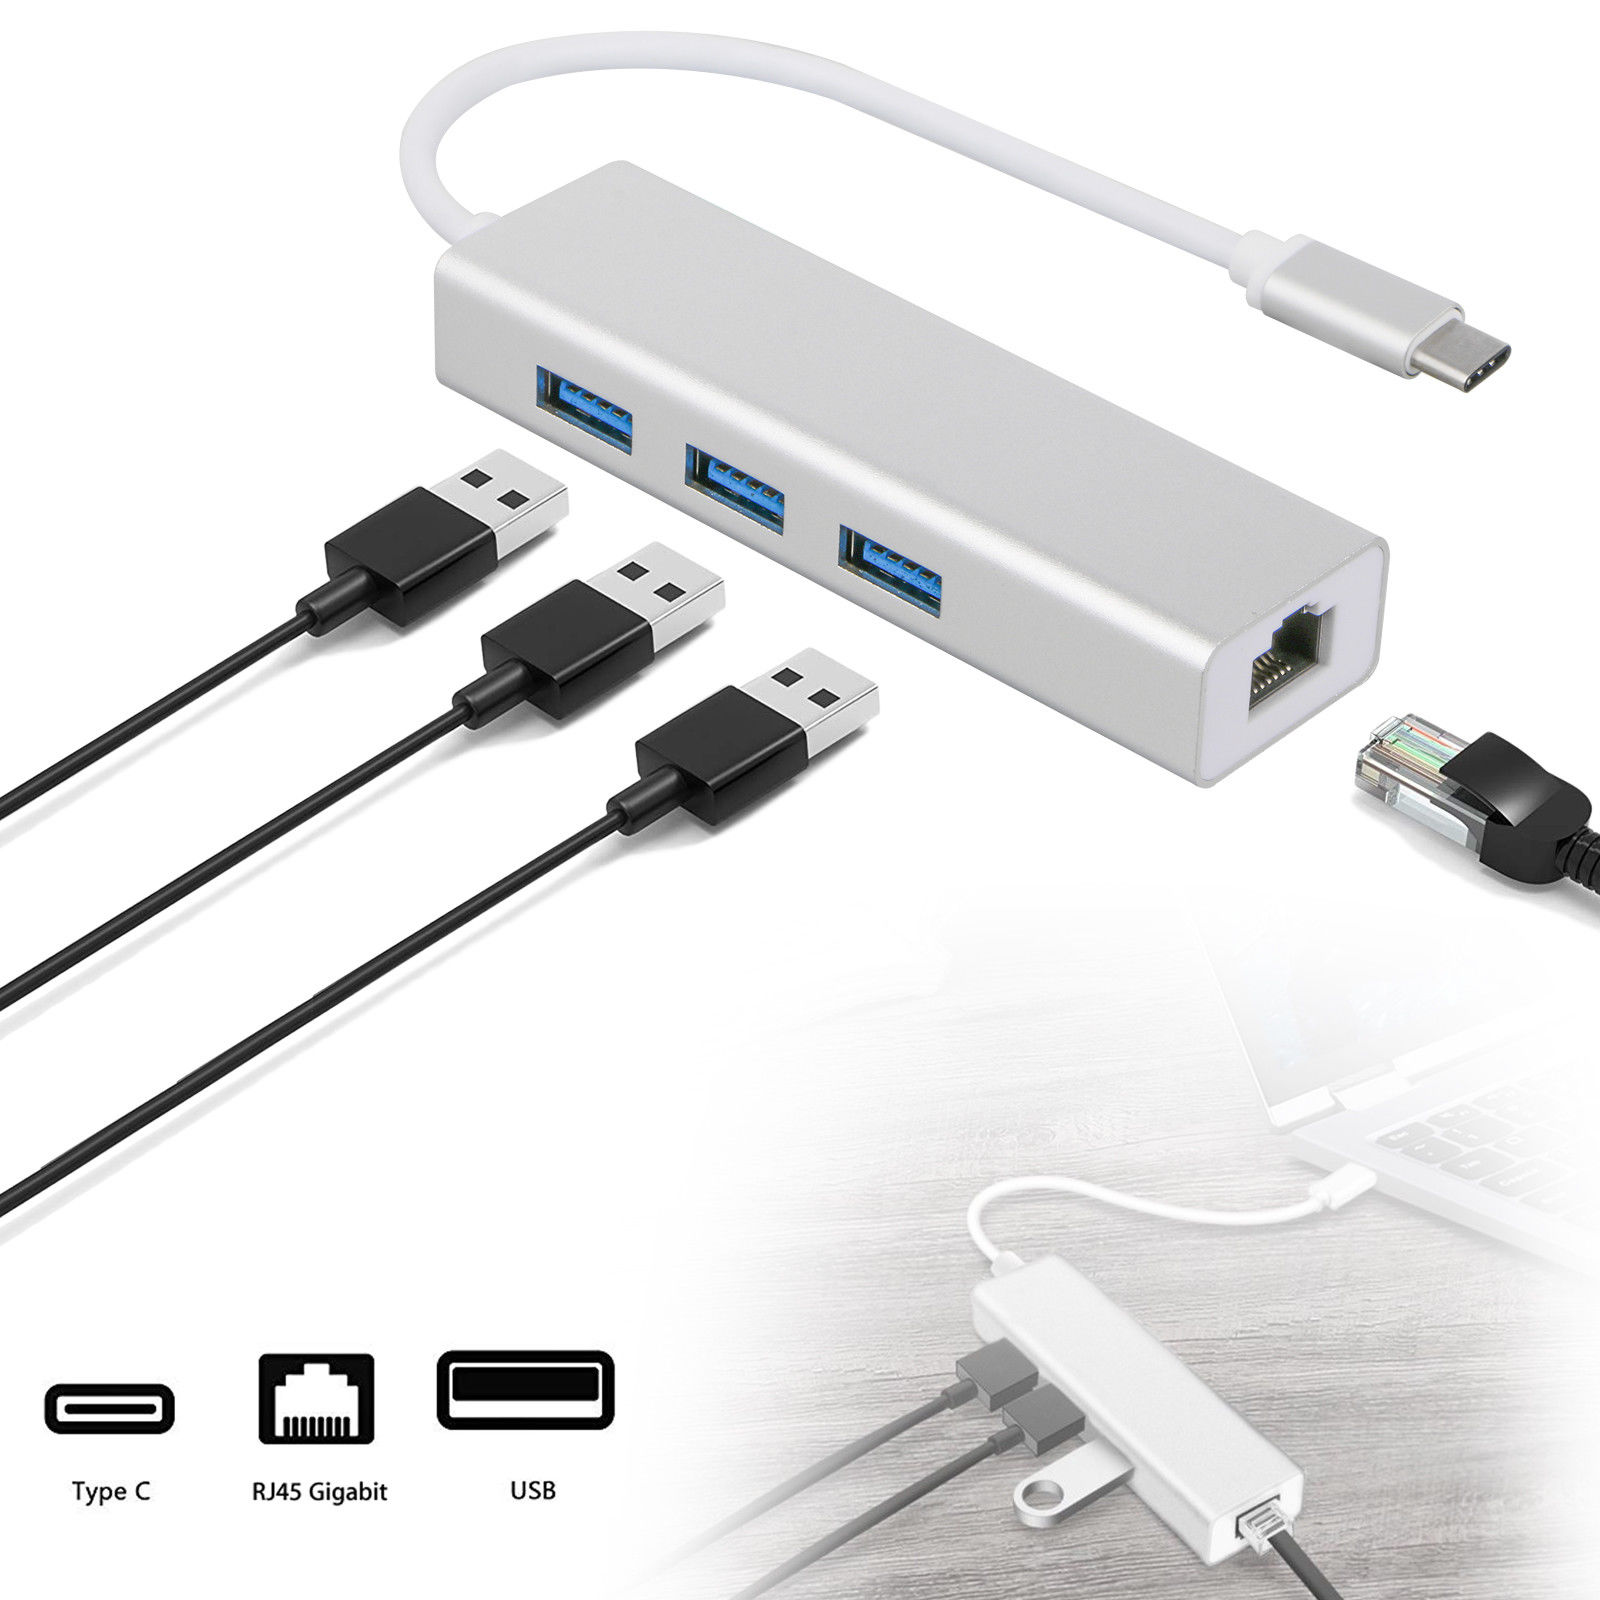 4in1 Type-C to 3 Port USB 3.0 HUB with RJ45 LAN Ethernet Network Adapter for MacBook Pro 2018/2017,New MacBook Air 2018,ChromeBook,Surface Go and More